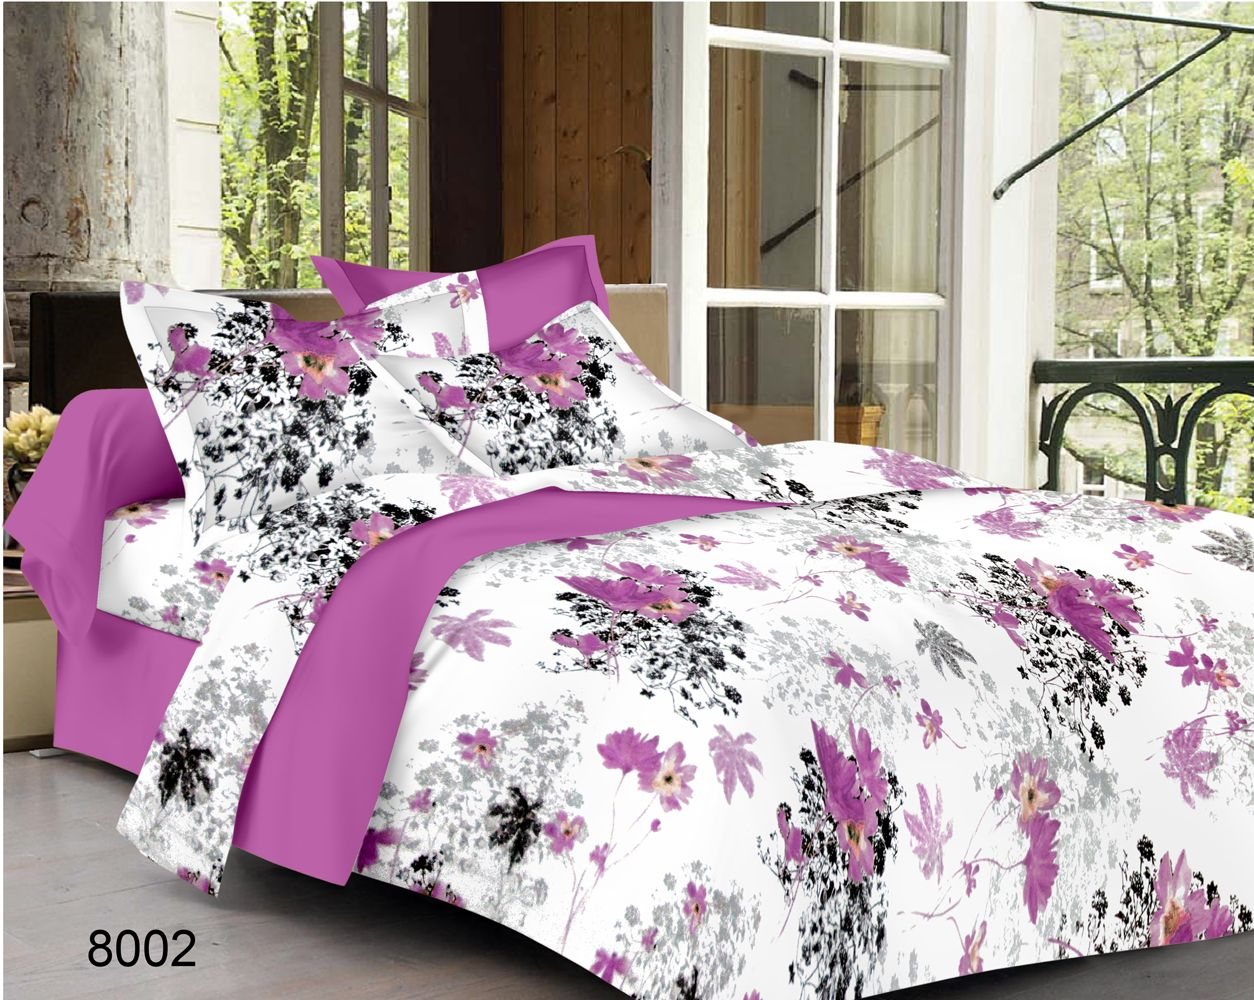 Luxurious 8 Cotton Bed Sheet Lowest Price Ping Printed Double Set 100 Satin Size 224cm X 254cm Rox Bedsheet 45cm 69cm